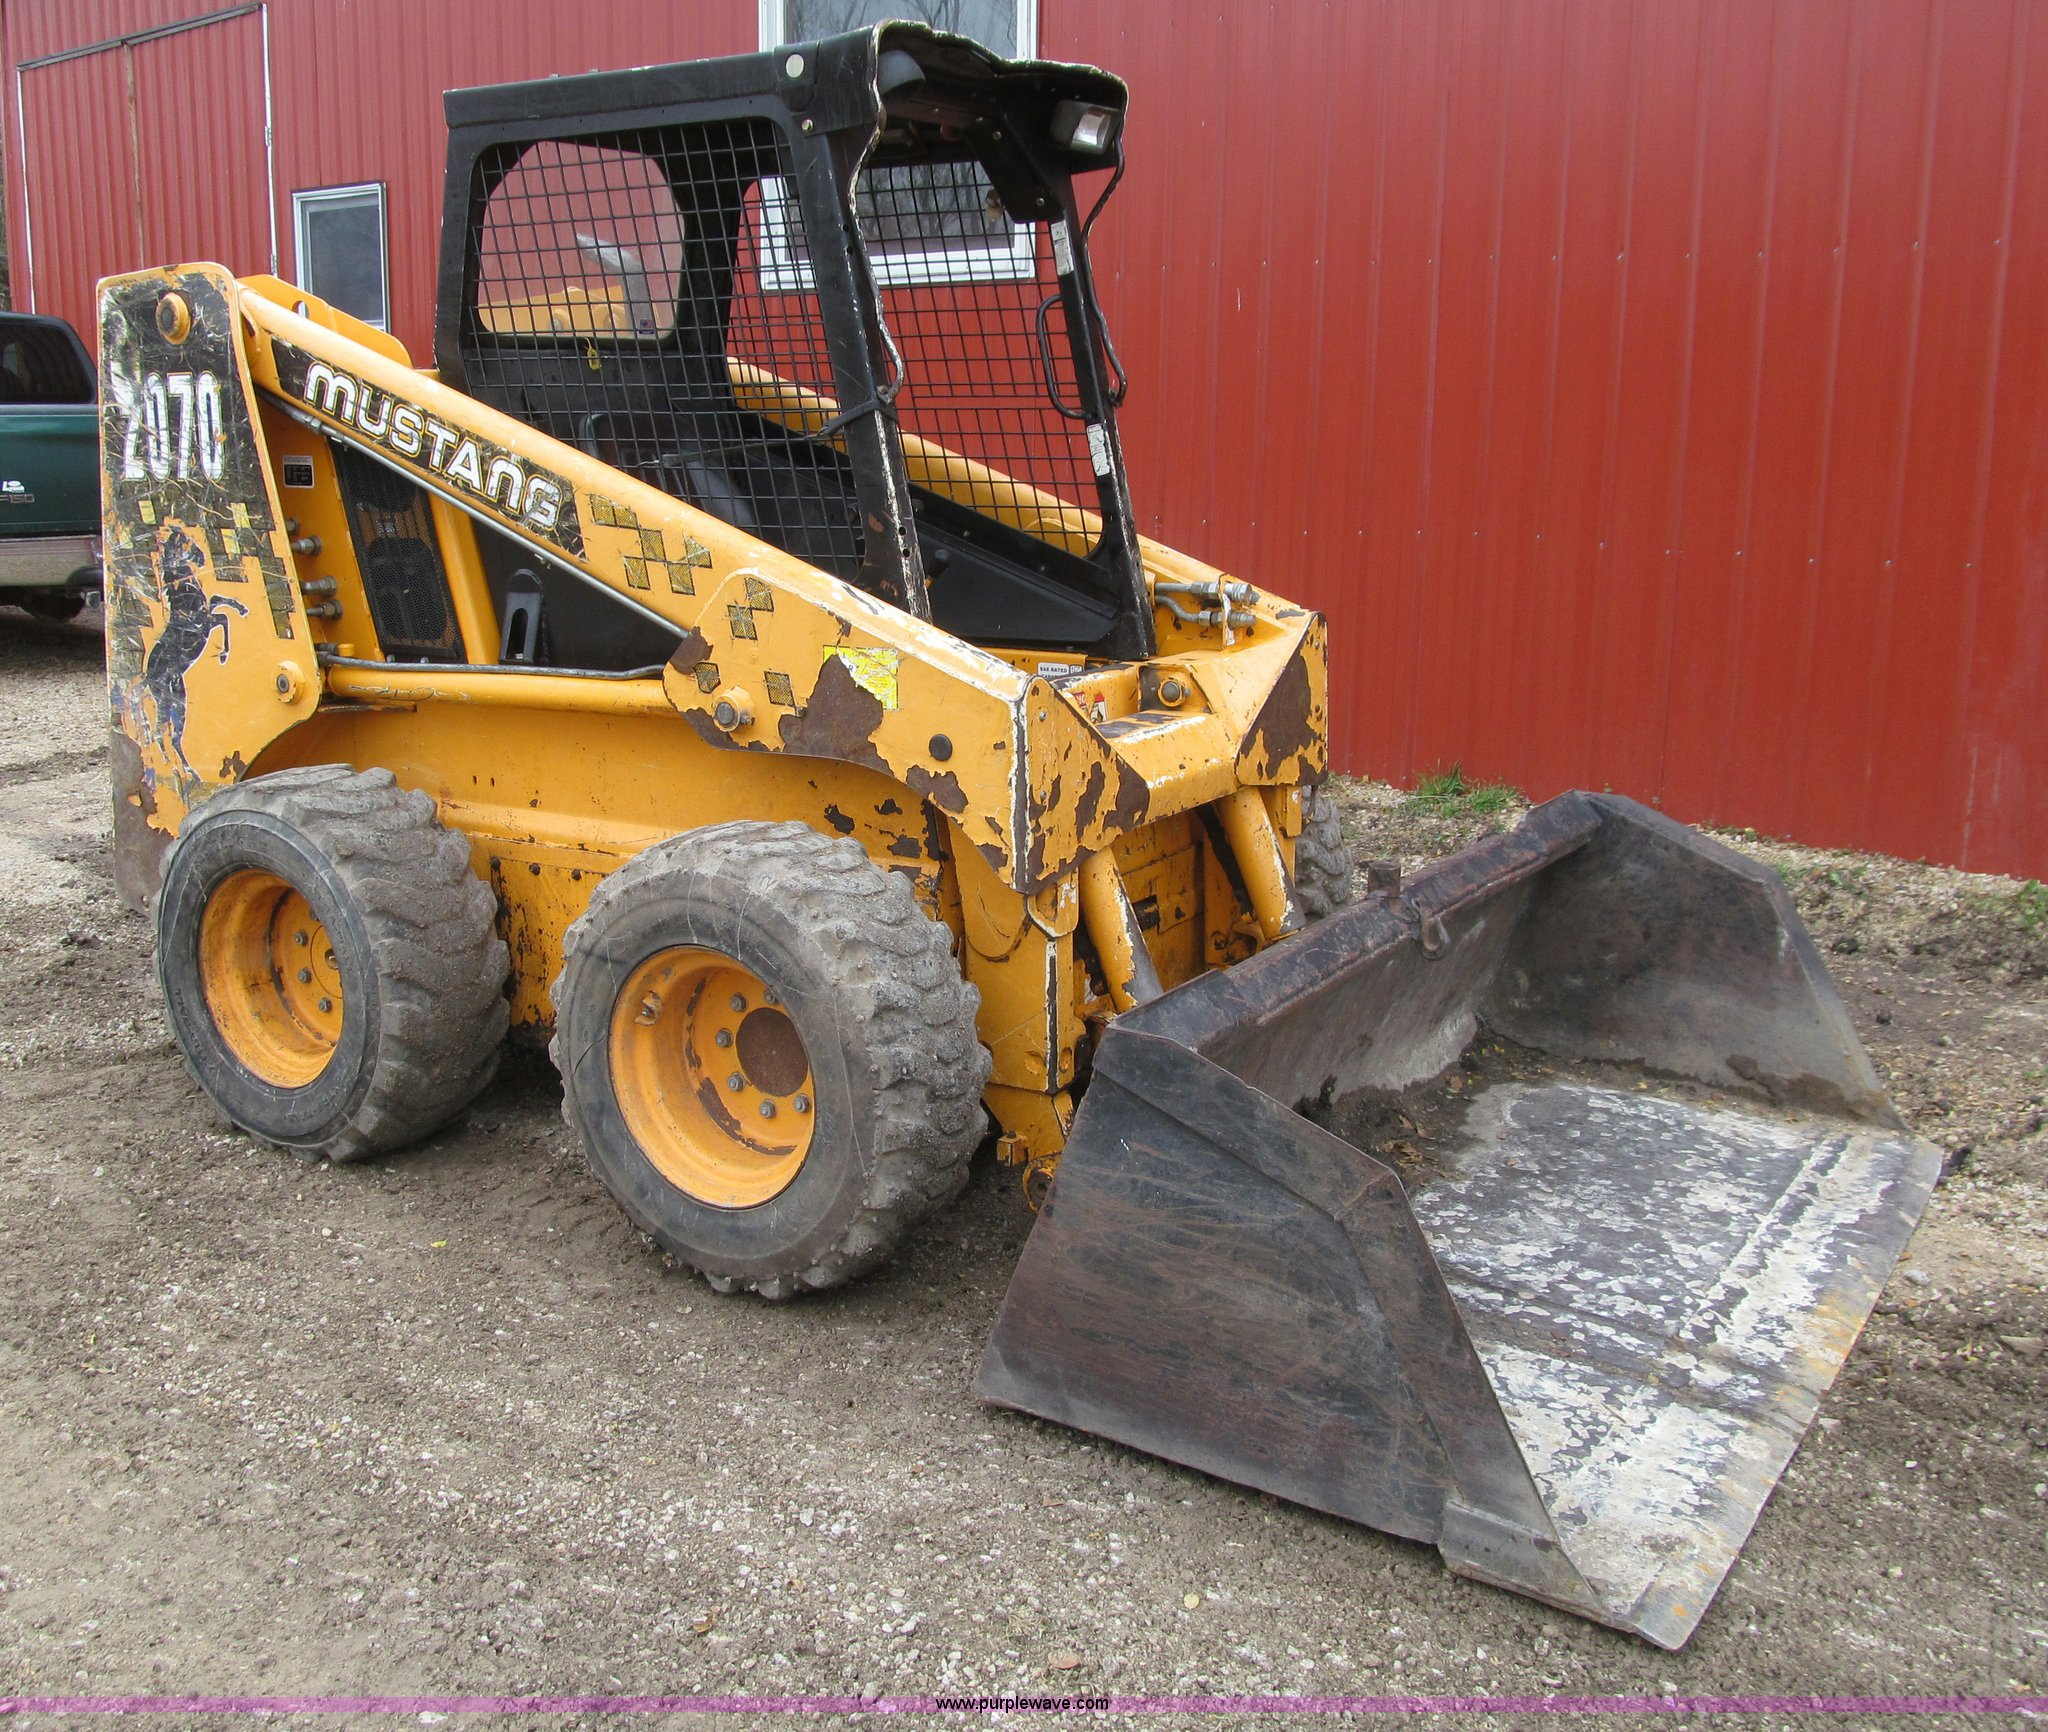 1999 Mustang 2070 Skid Steer Item L1810 Sold November 1 Fuel Filter Full Size In New Window